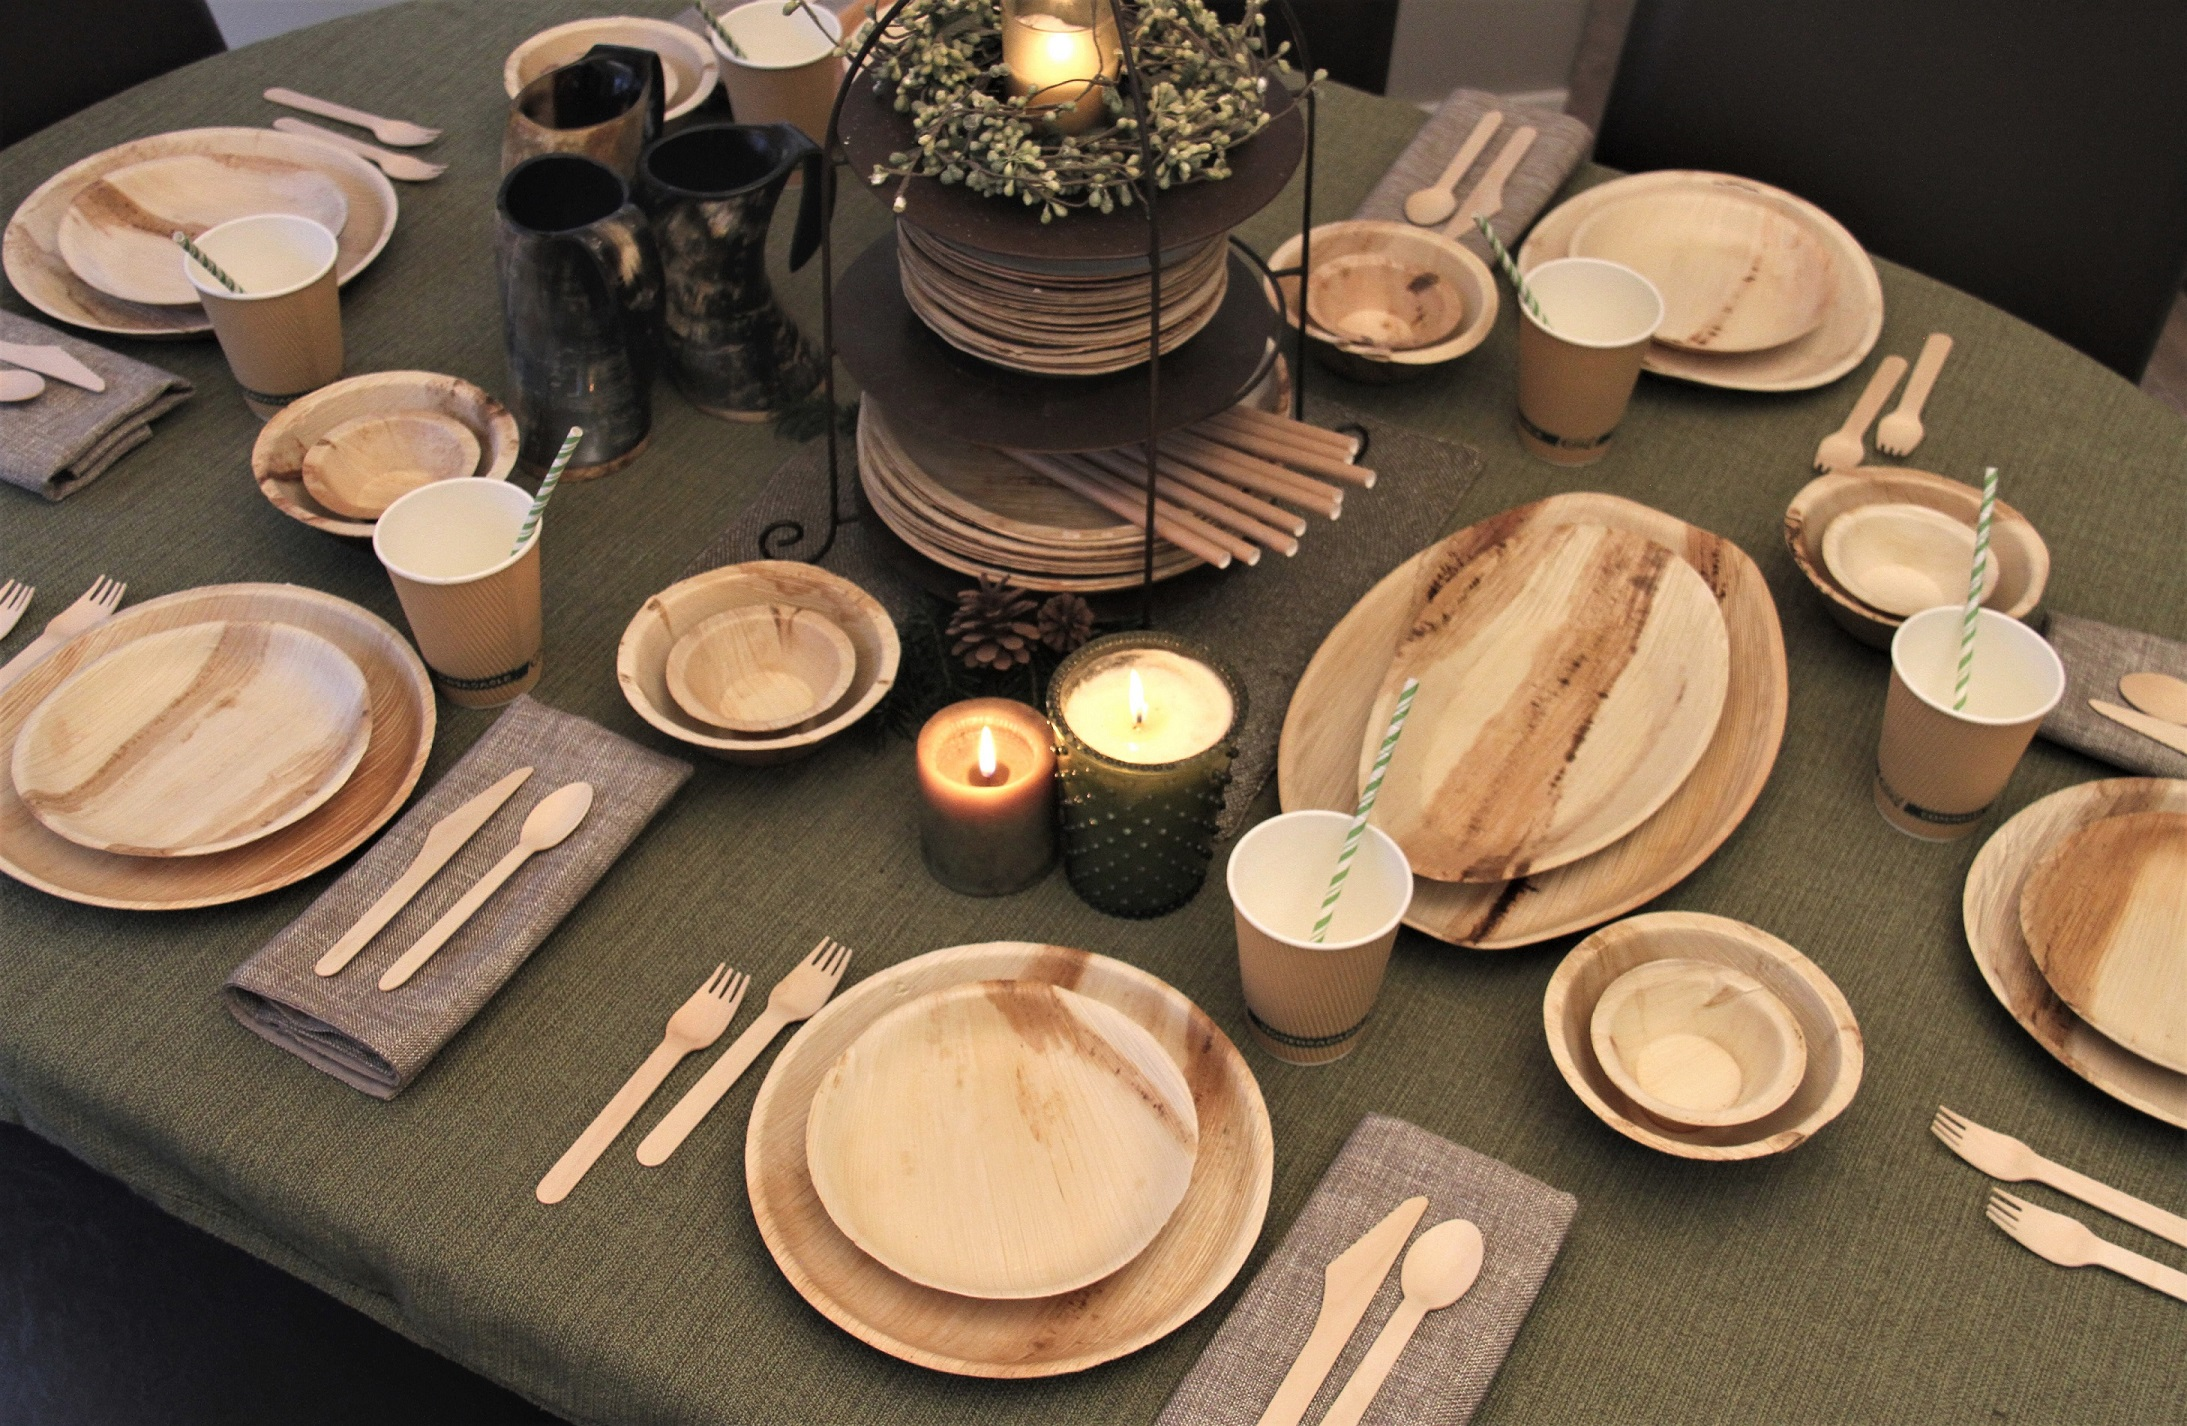 Ritualware - Disposable dishes for your rituals, retreats, festivals, and religious gatherings. Sustainable, biodegradable, environmental, and made from the Earth.